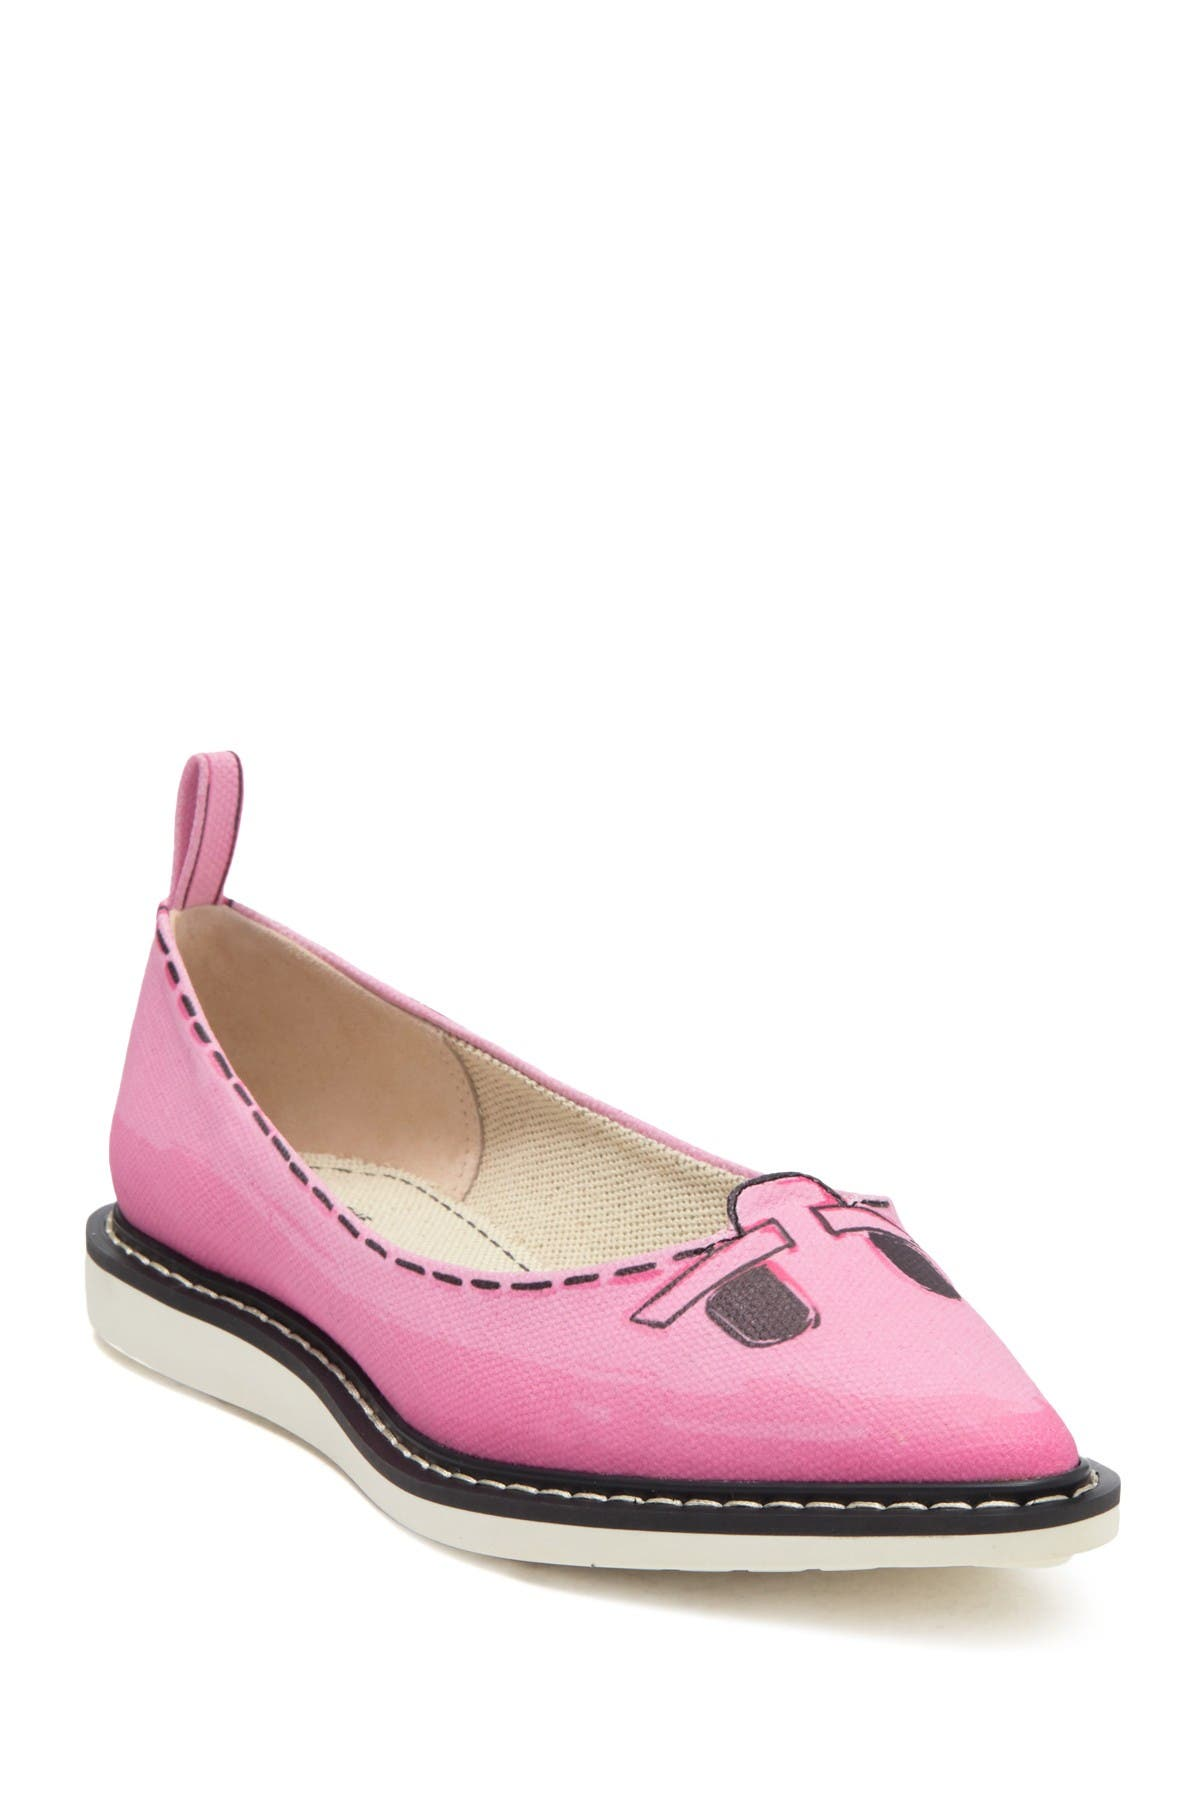 Image of Marc Jacobs The Mouse Shoe Pointy Toe Loafer